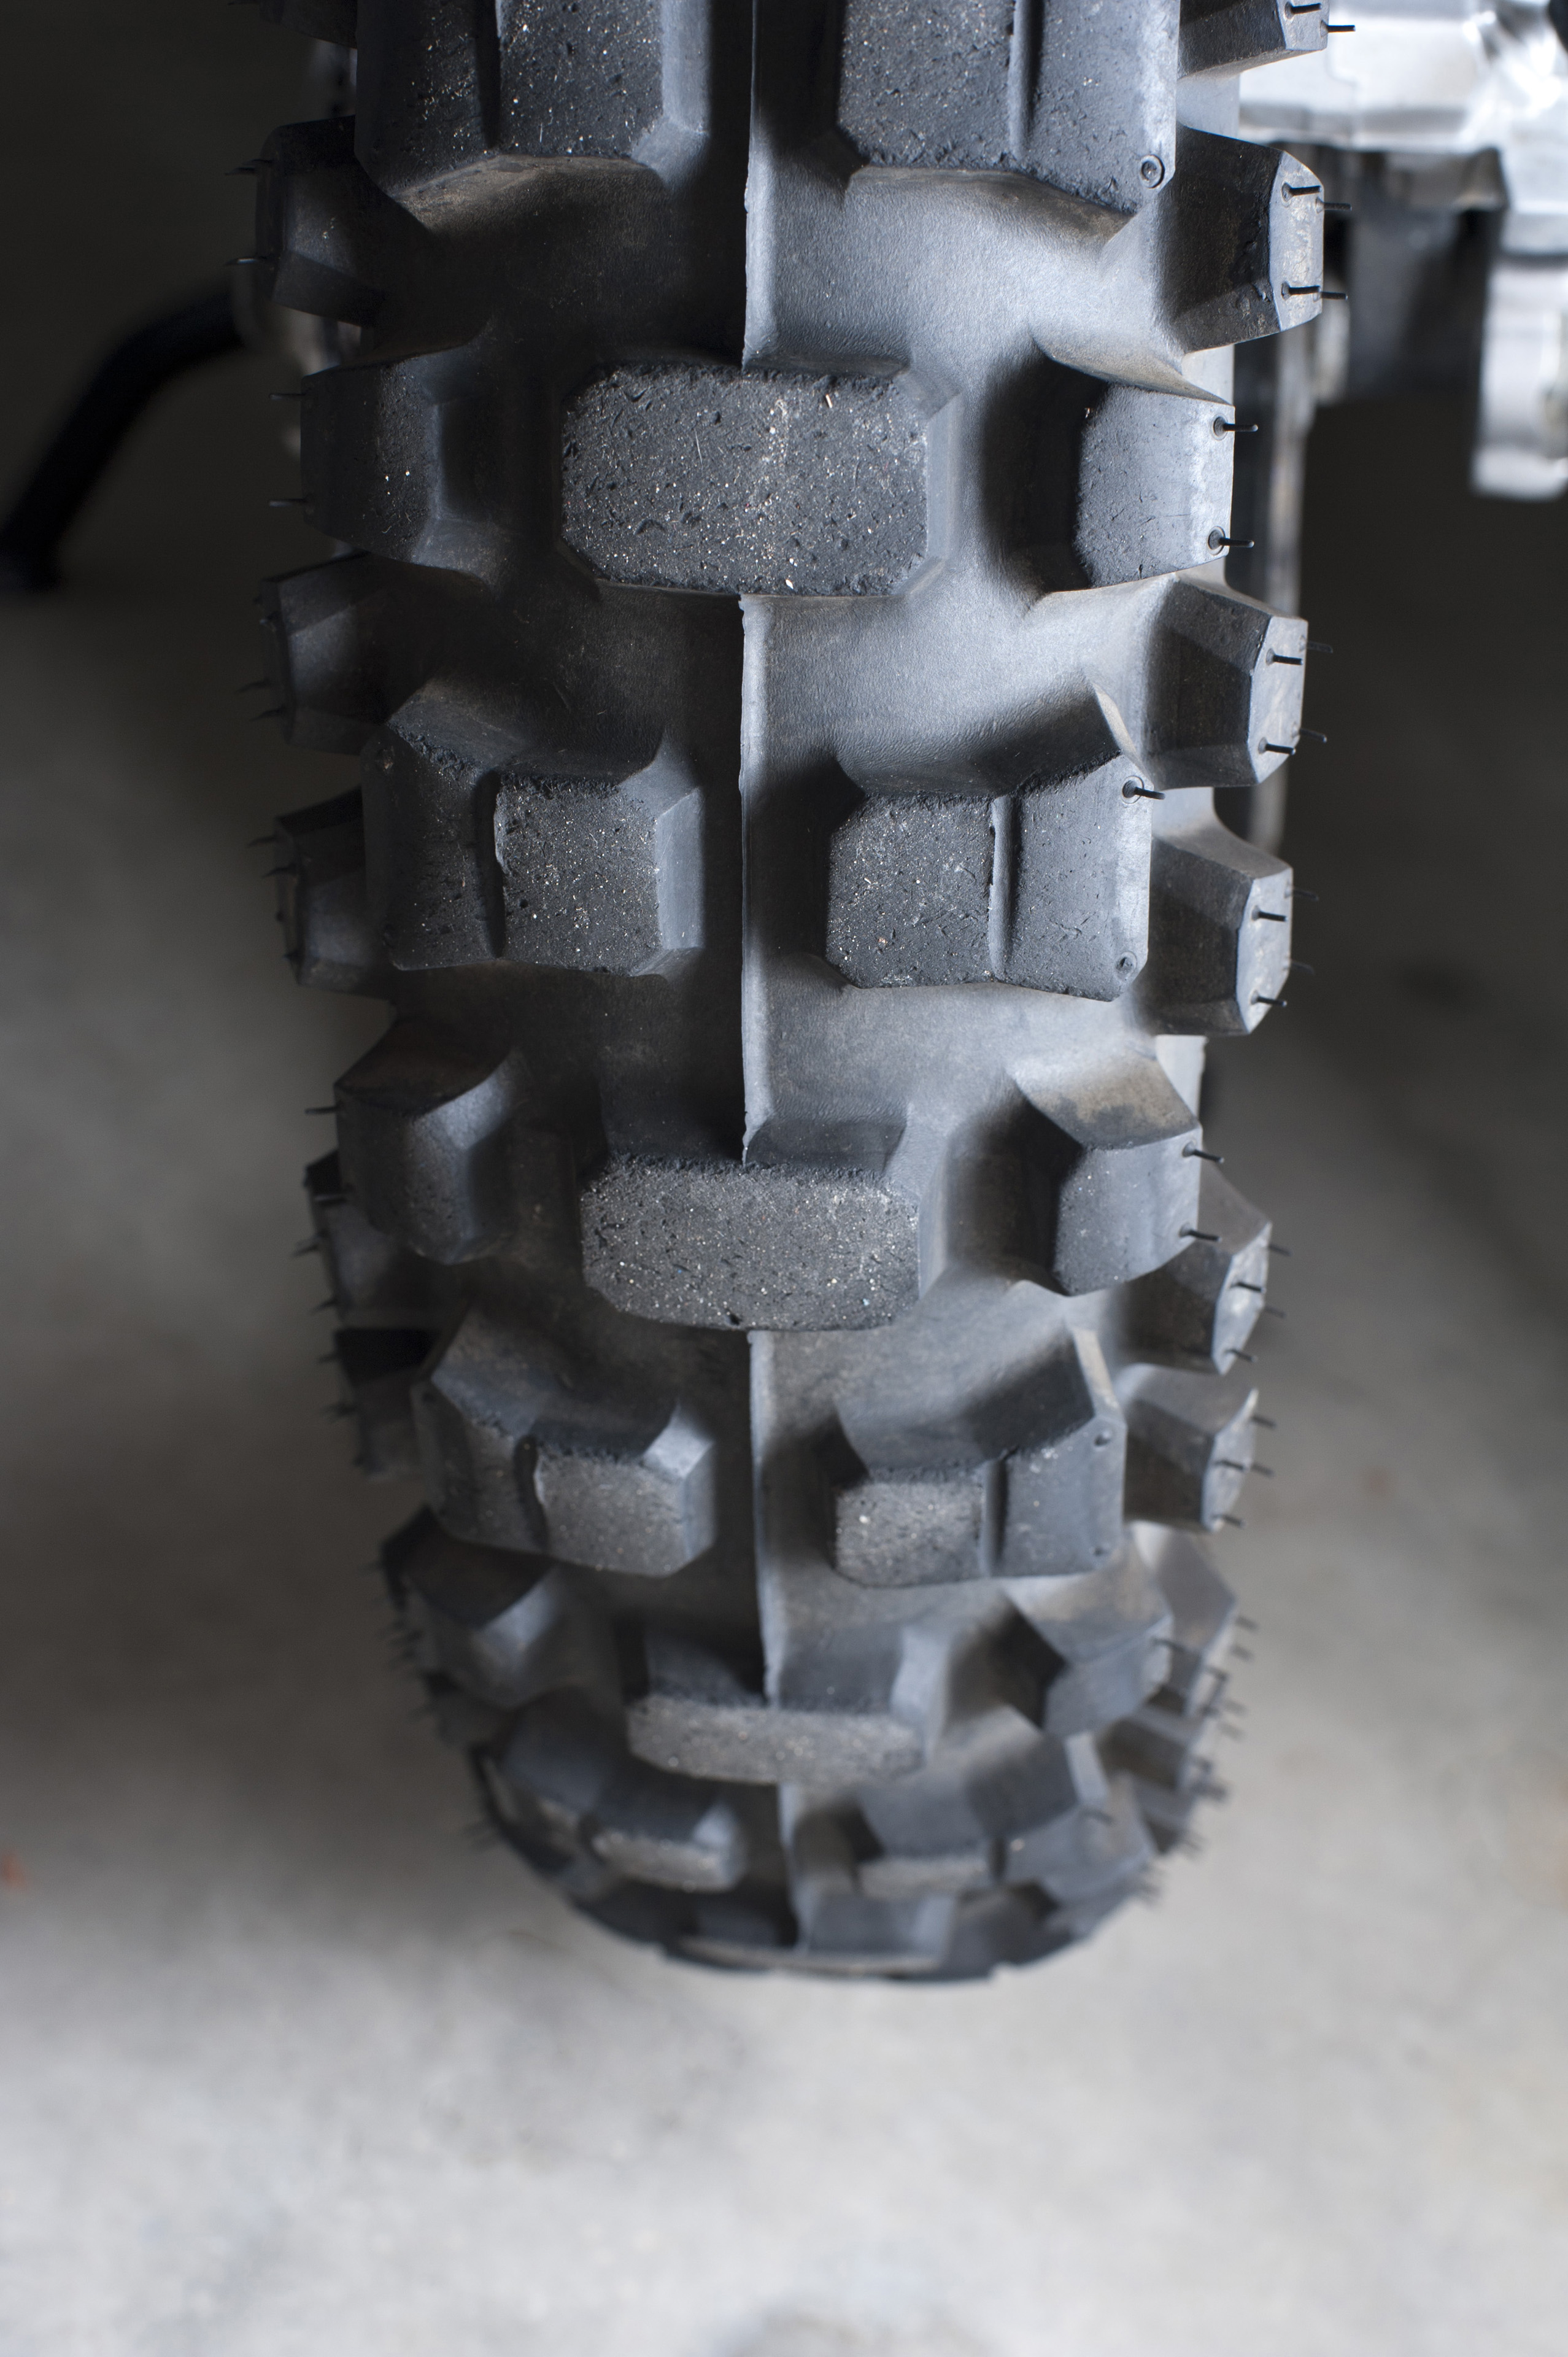 New tyre detail on a motorbike showing the rubber tread parked on a grey surface